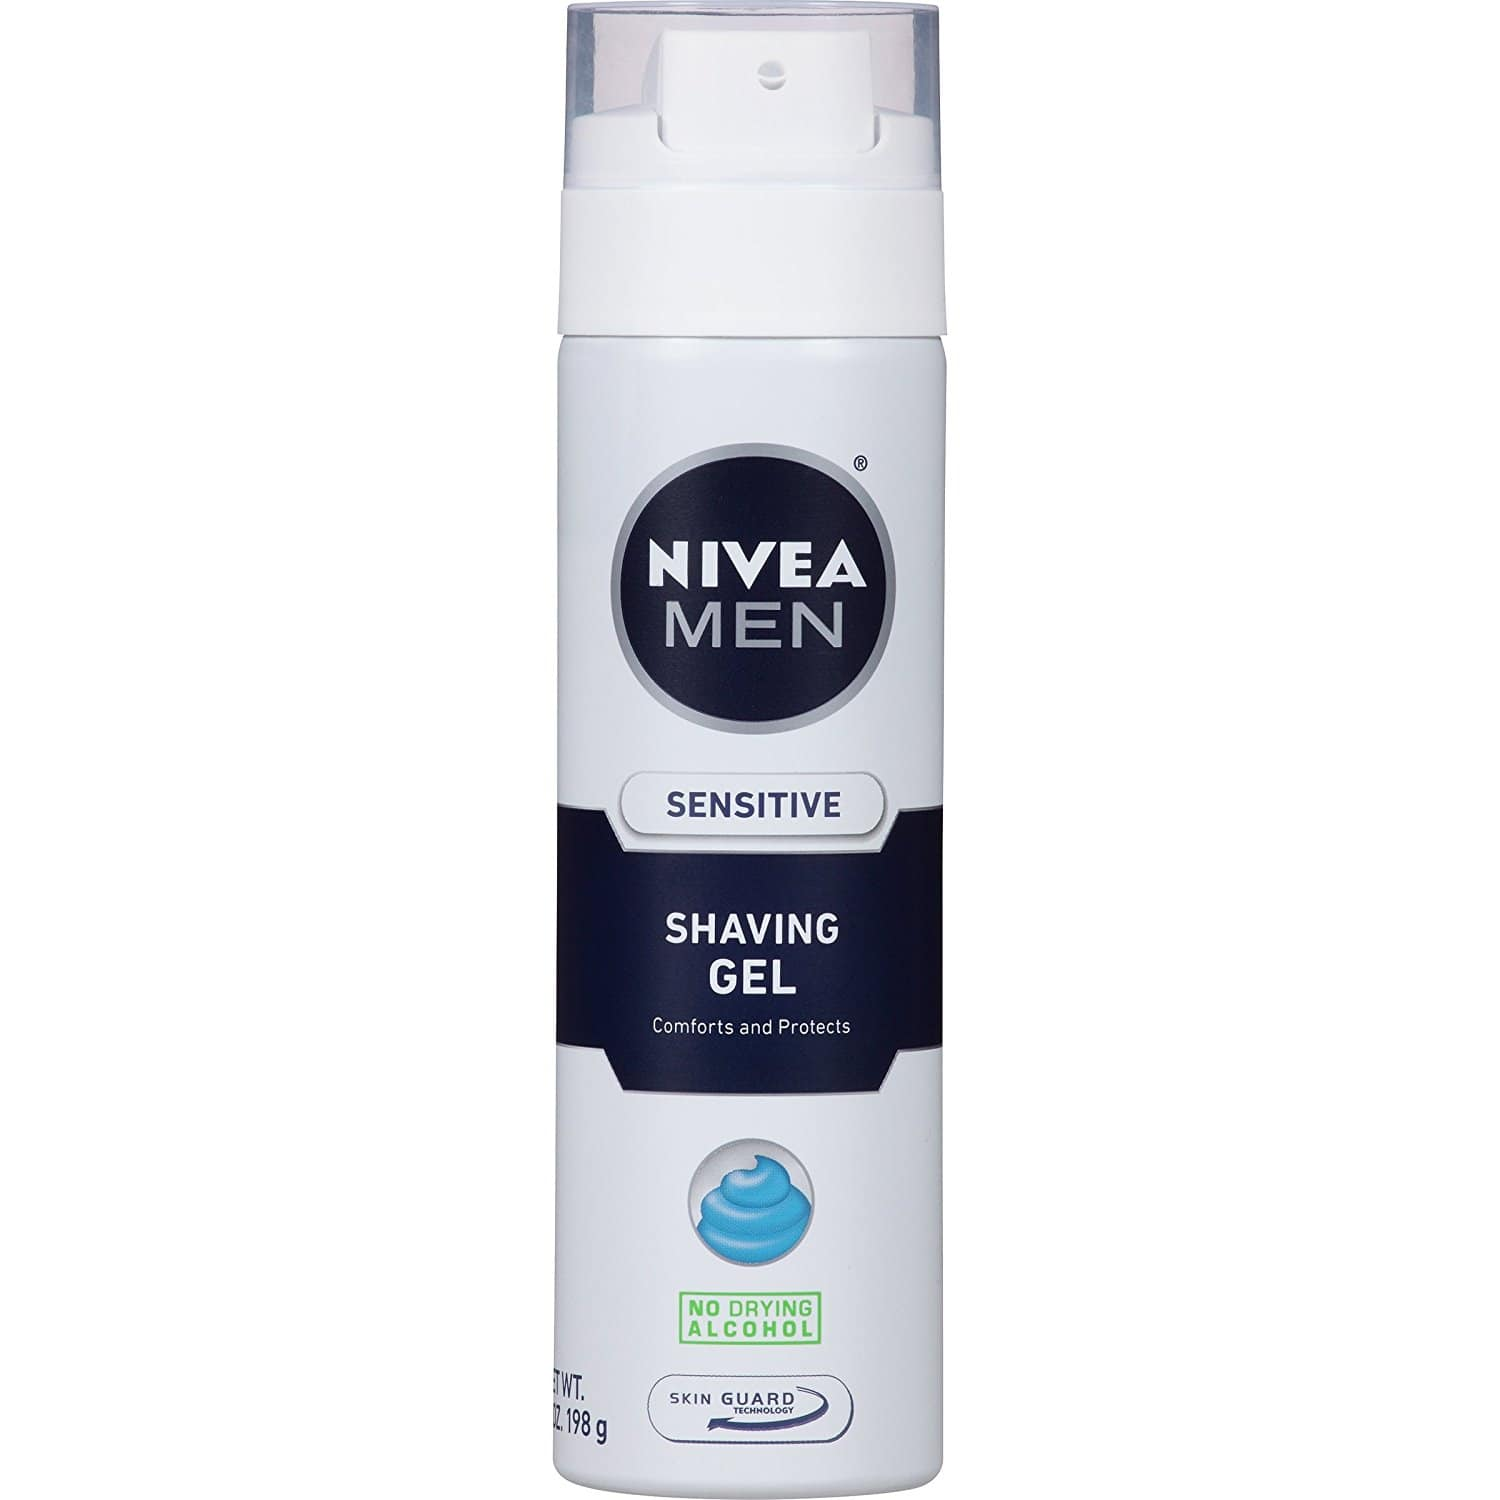 3-Pack of 7oz Nivea For Men Sensitive Shaving Gel $6.29 or Less w/ S&S + Free Shipping ~ Amazon